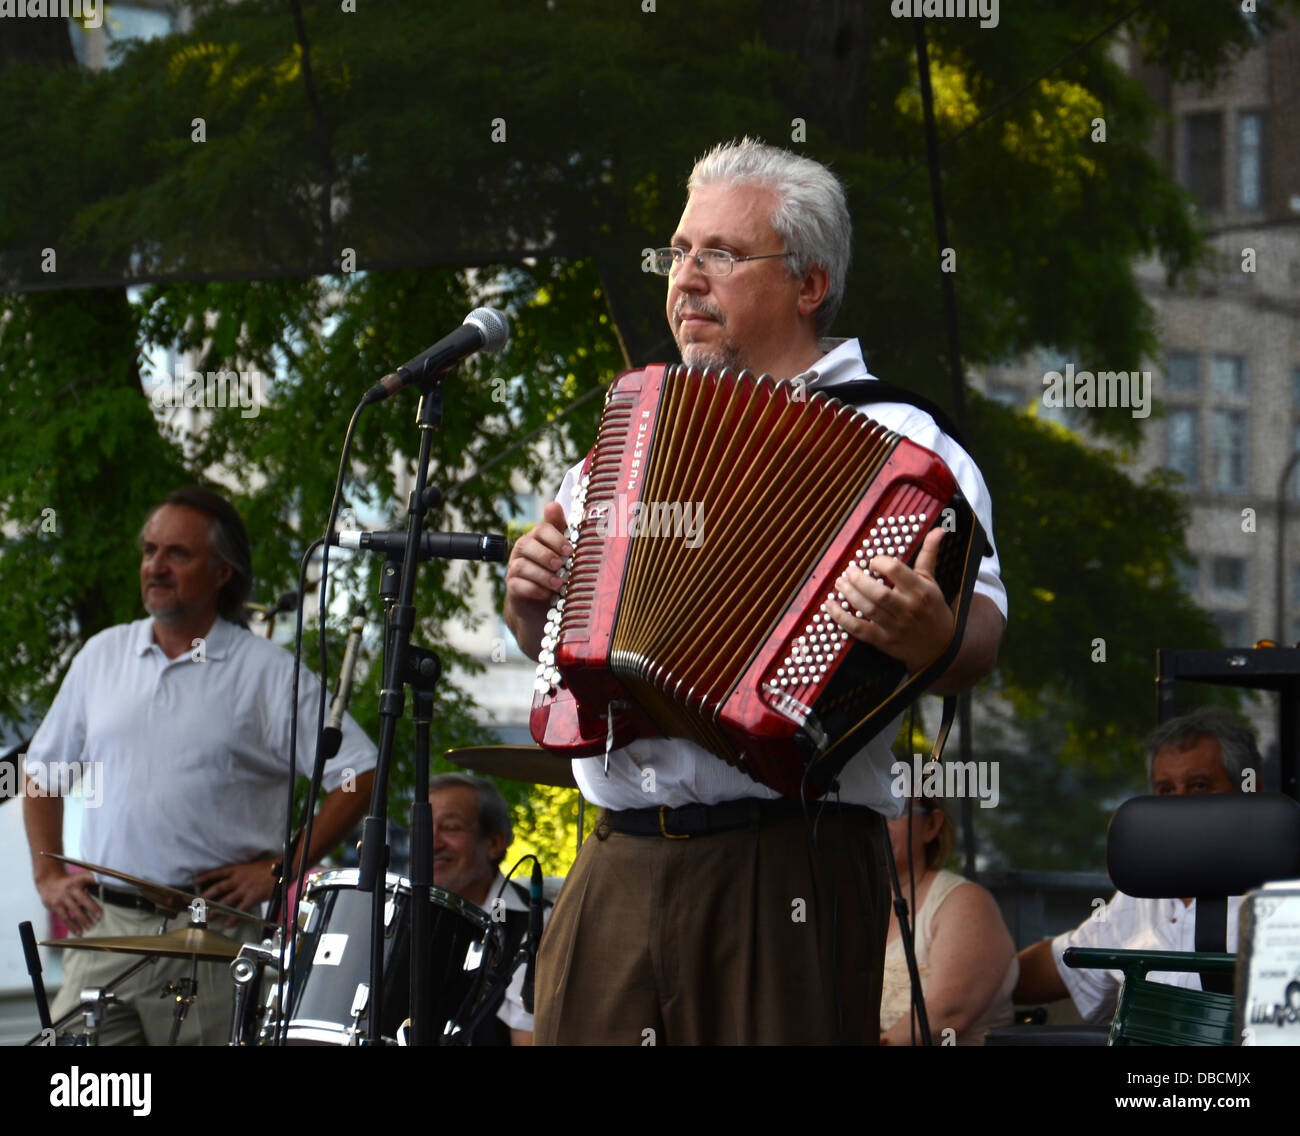 CHICAGO - JULY 18: Peter Sadkhin, accordionist and band leader of Tum Balalaika Klezmer band - Stock Image